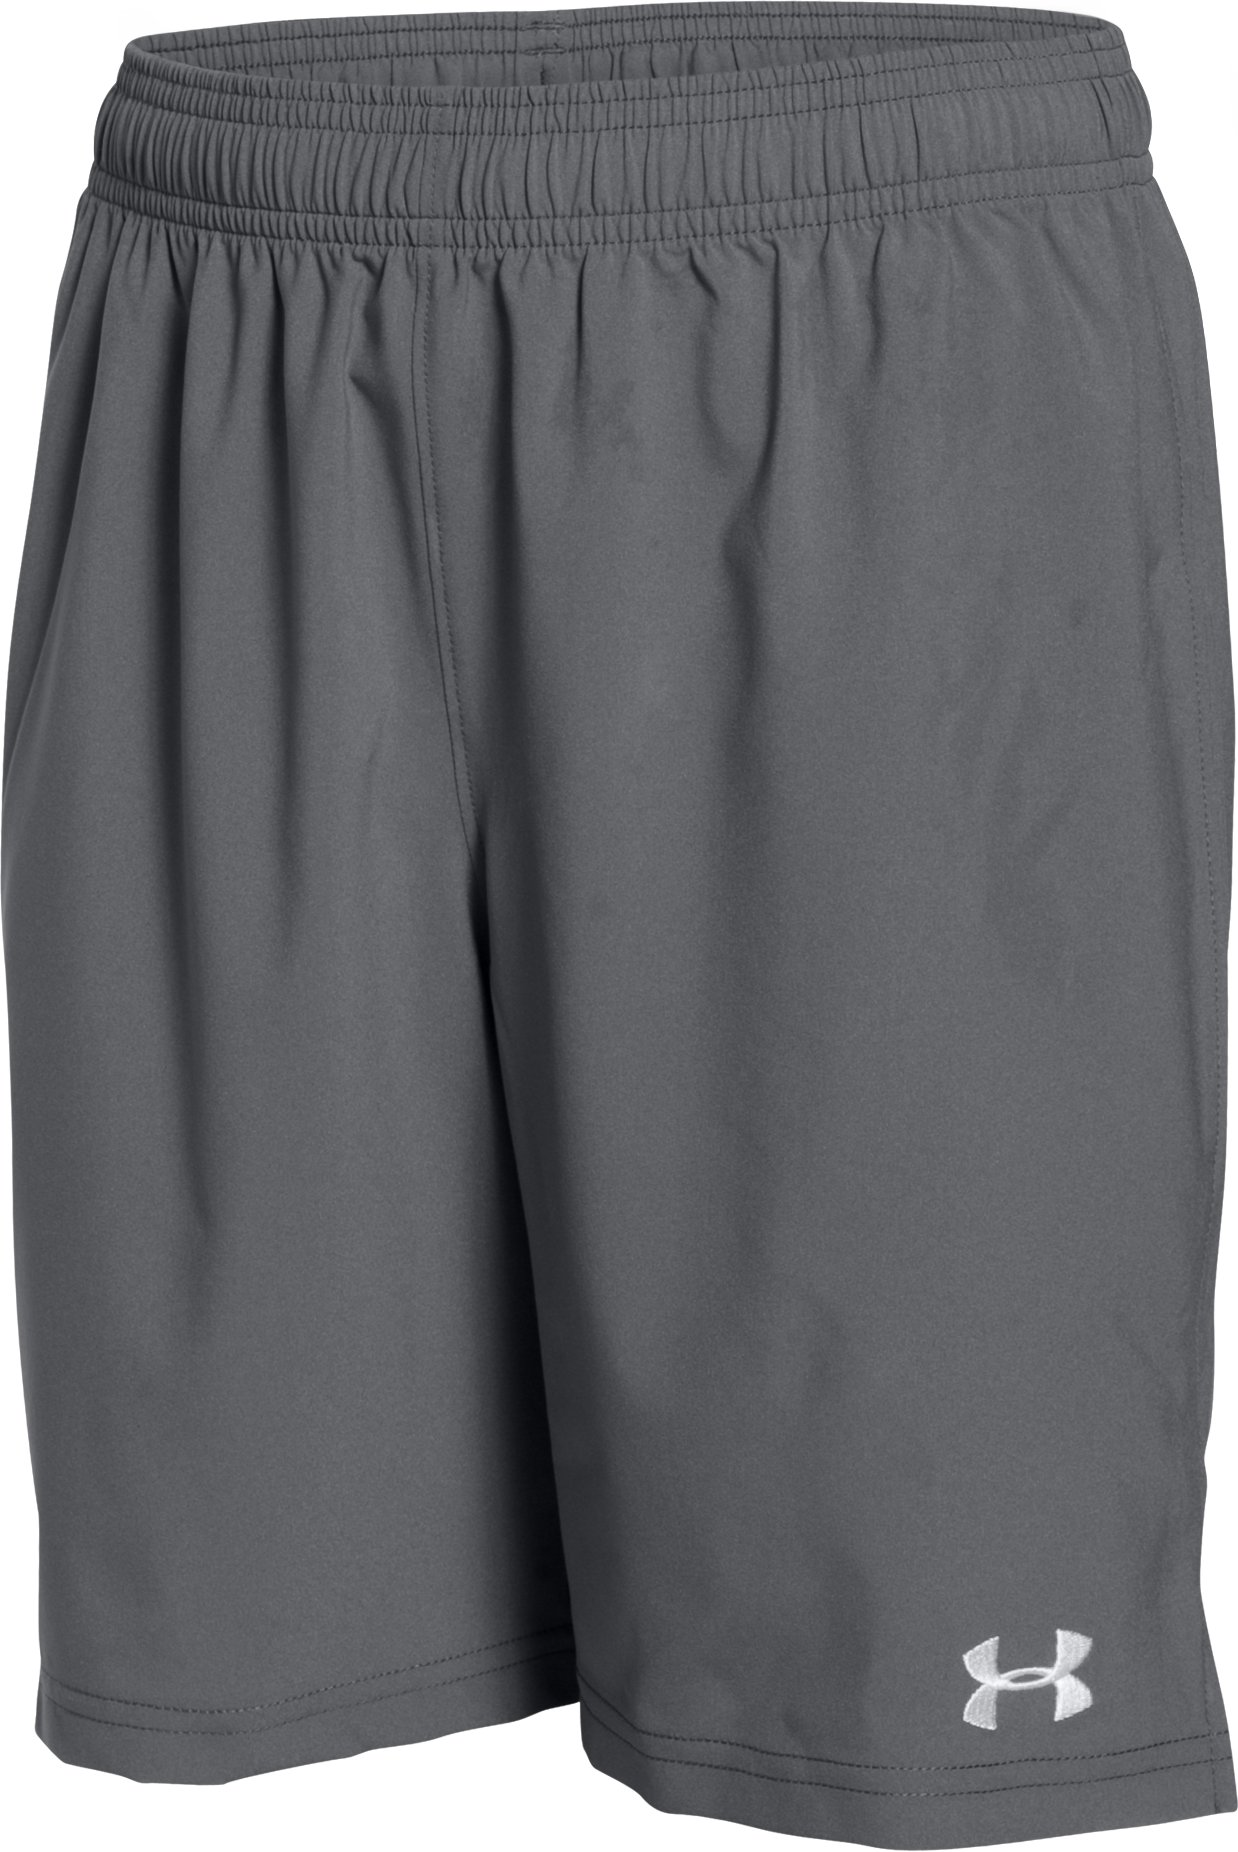 Boys' UA Hustle Shorts, Graphite, undefined